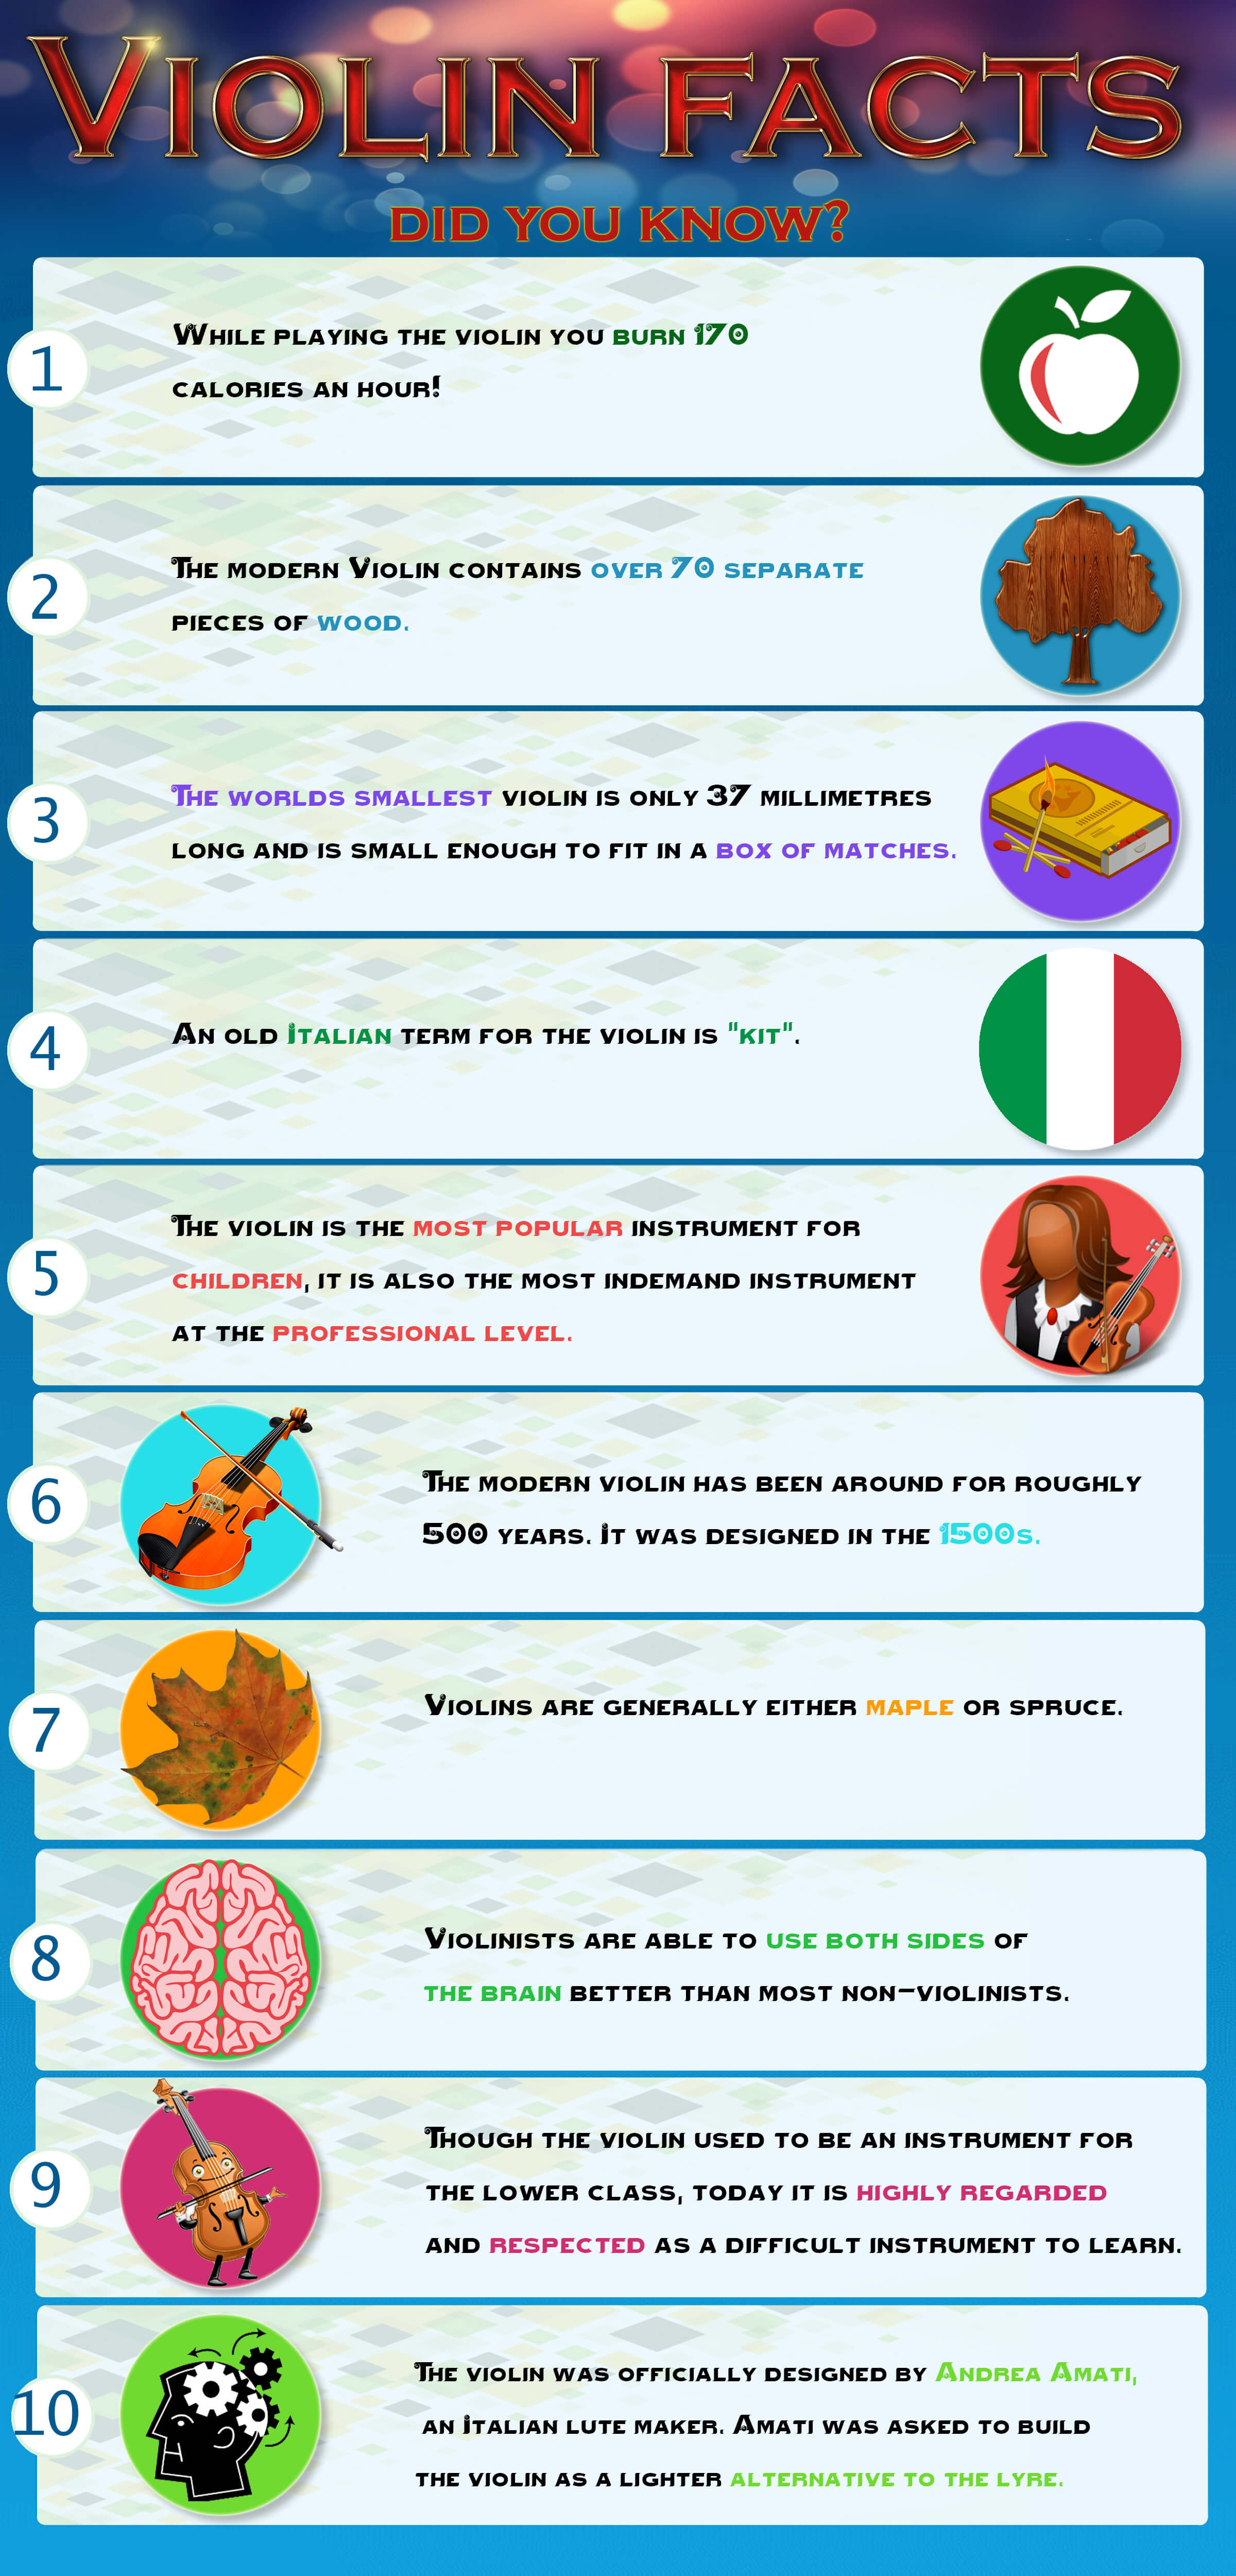 Infographic: Violins facts